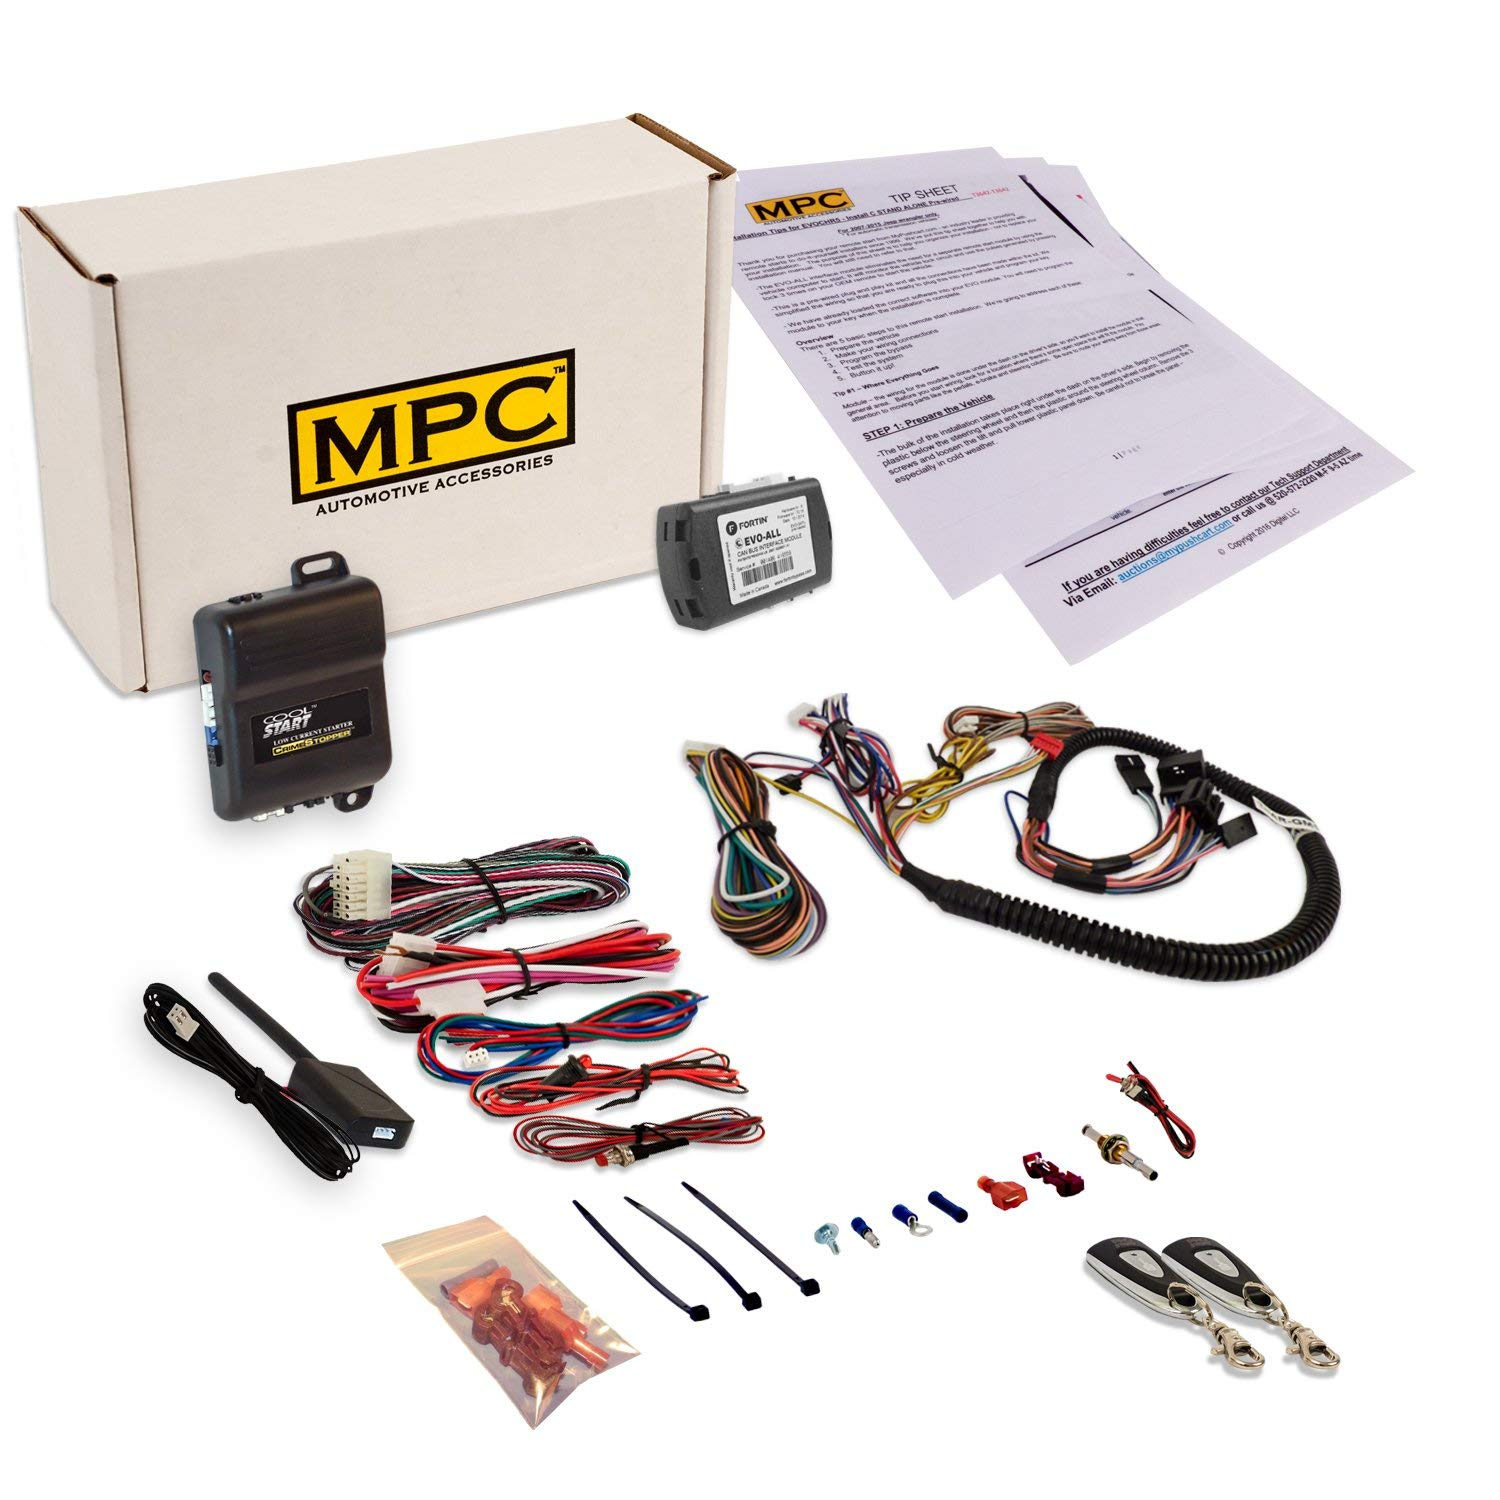 with T-Harness MPC Complete Remote Activated Remote Start Kit for 2012-2013 Toyota Corolla Firmware Preloaded